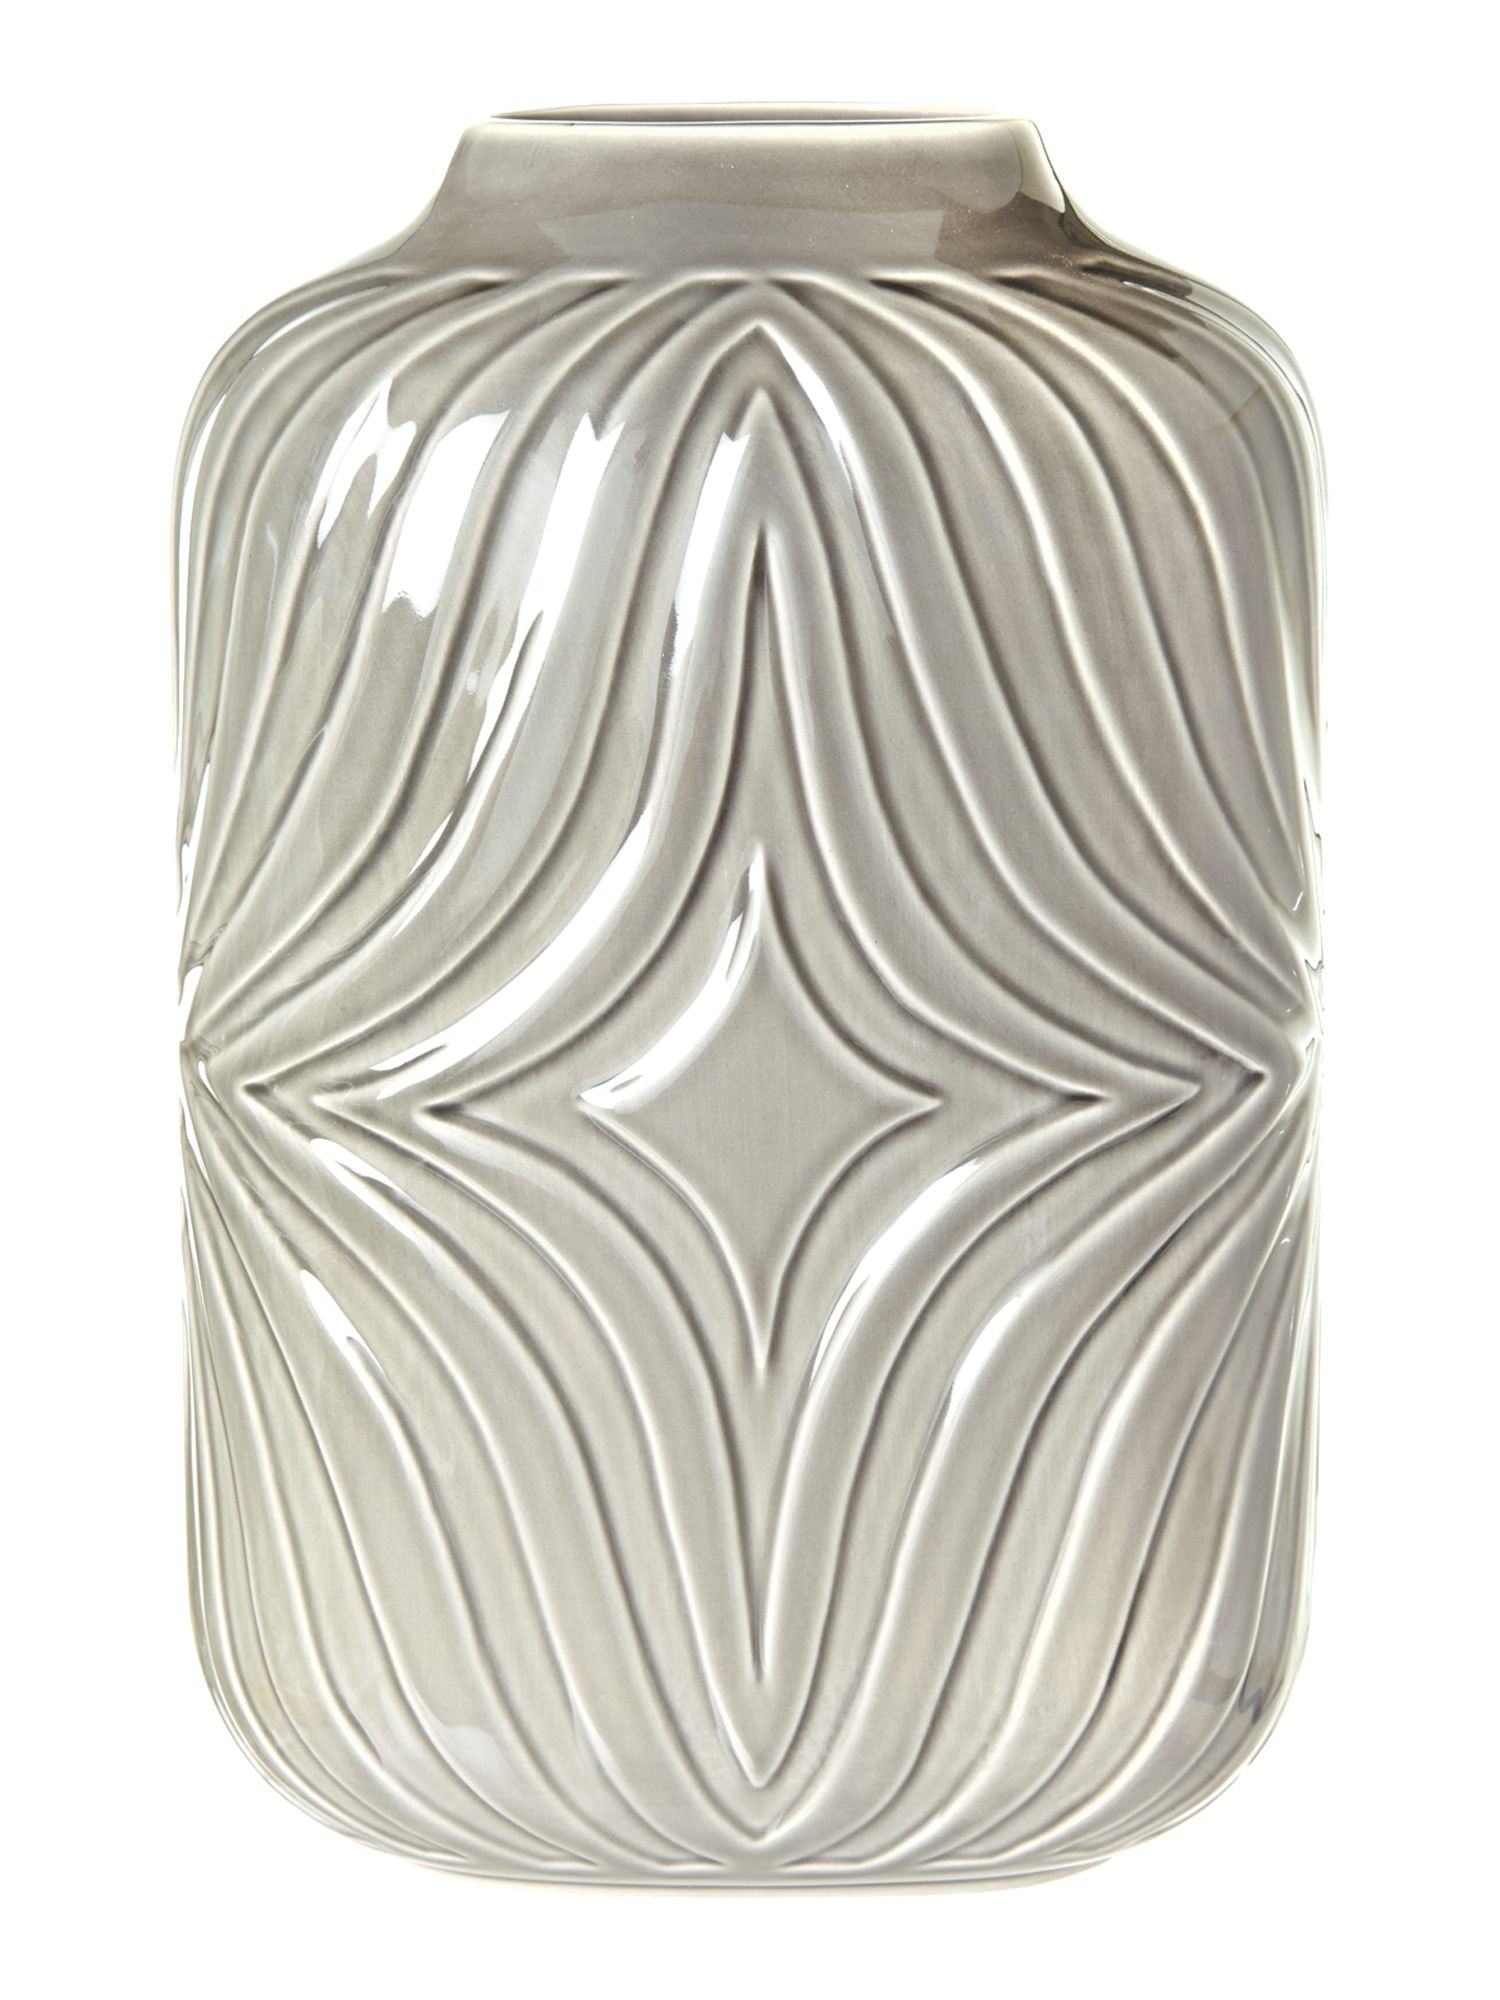 Grey ceramic vase, medium